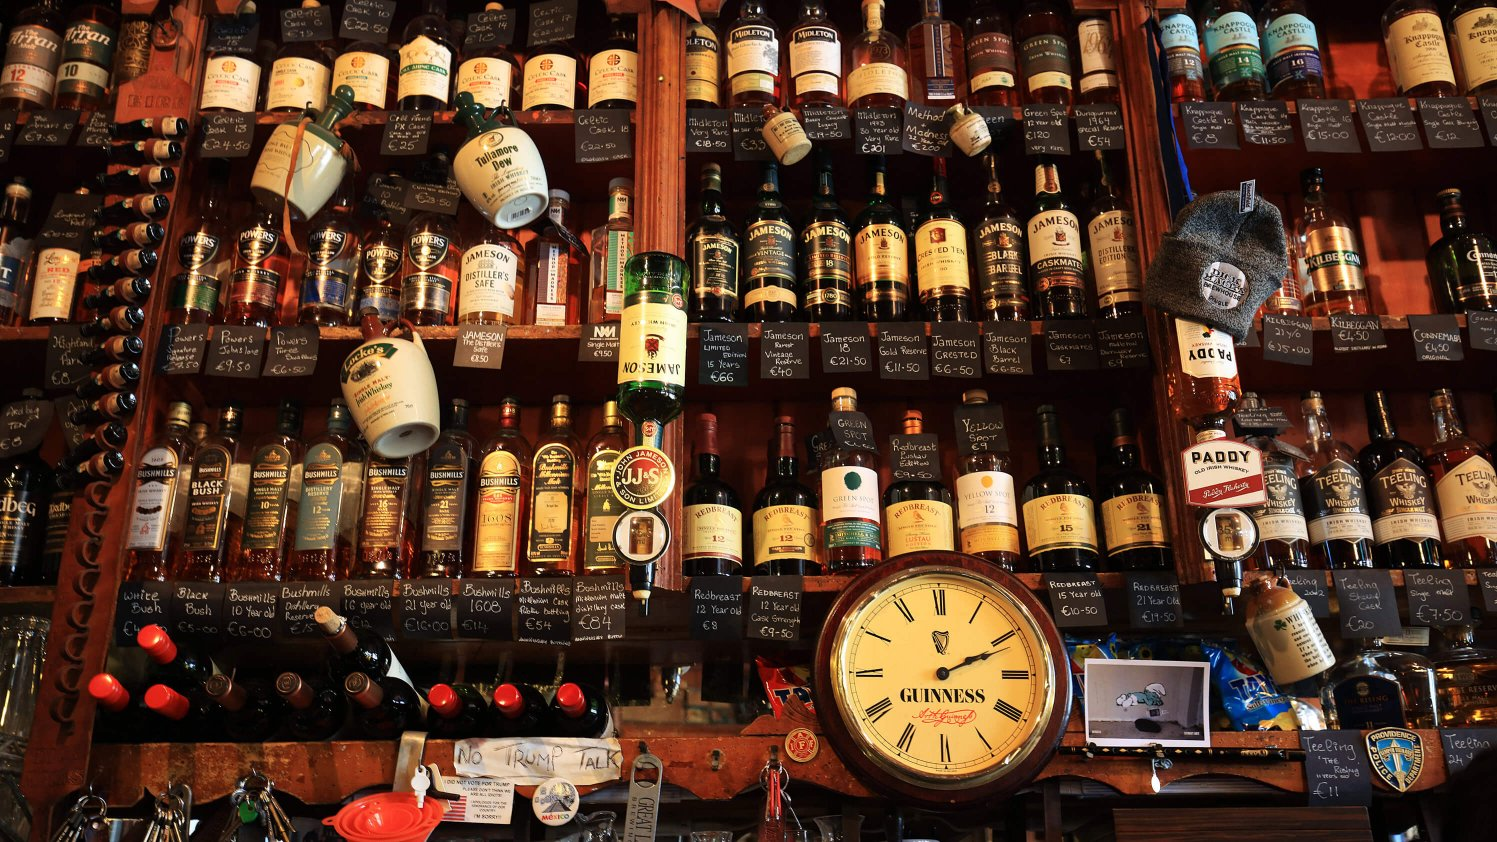 The extensive whiskey selection behind the bar at Dick Mack's in Dingle, Ireland